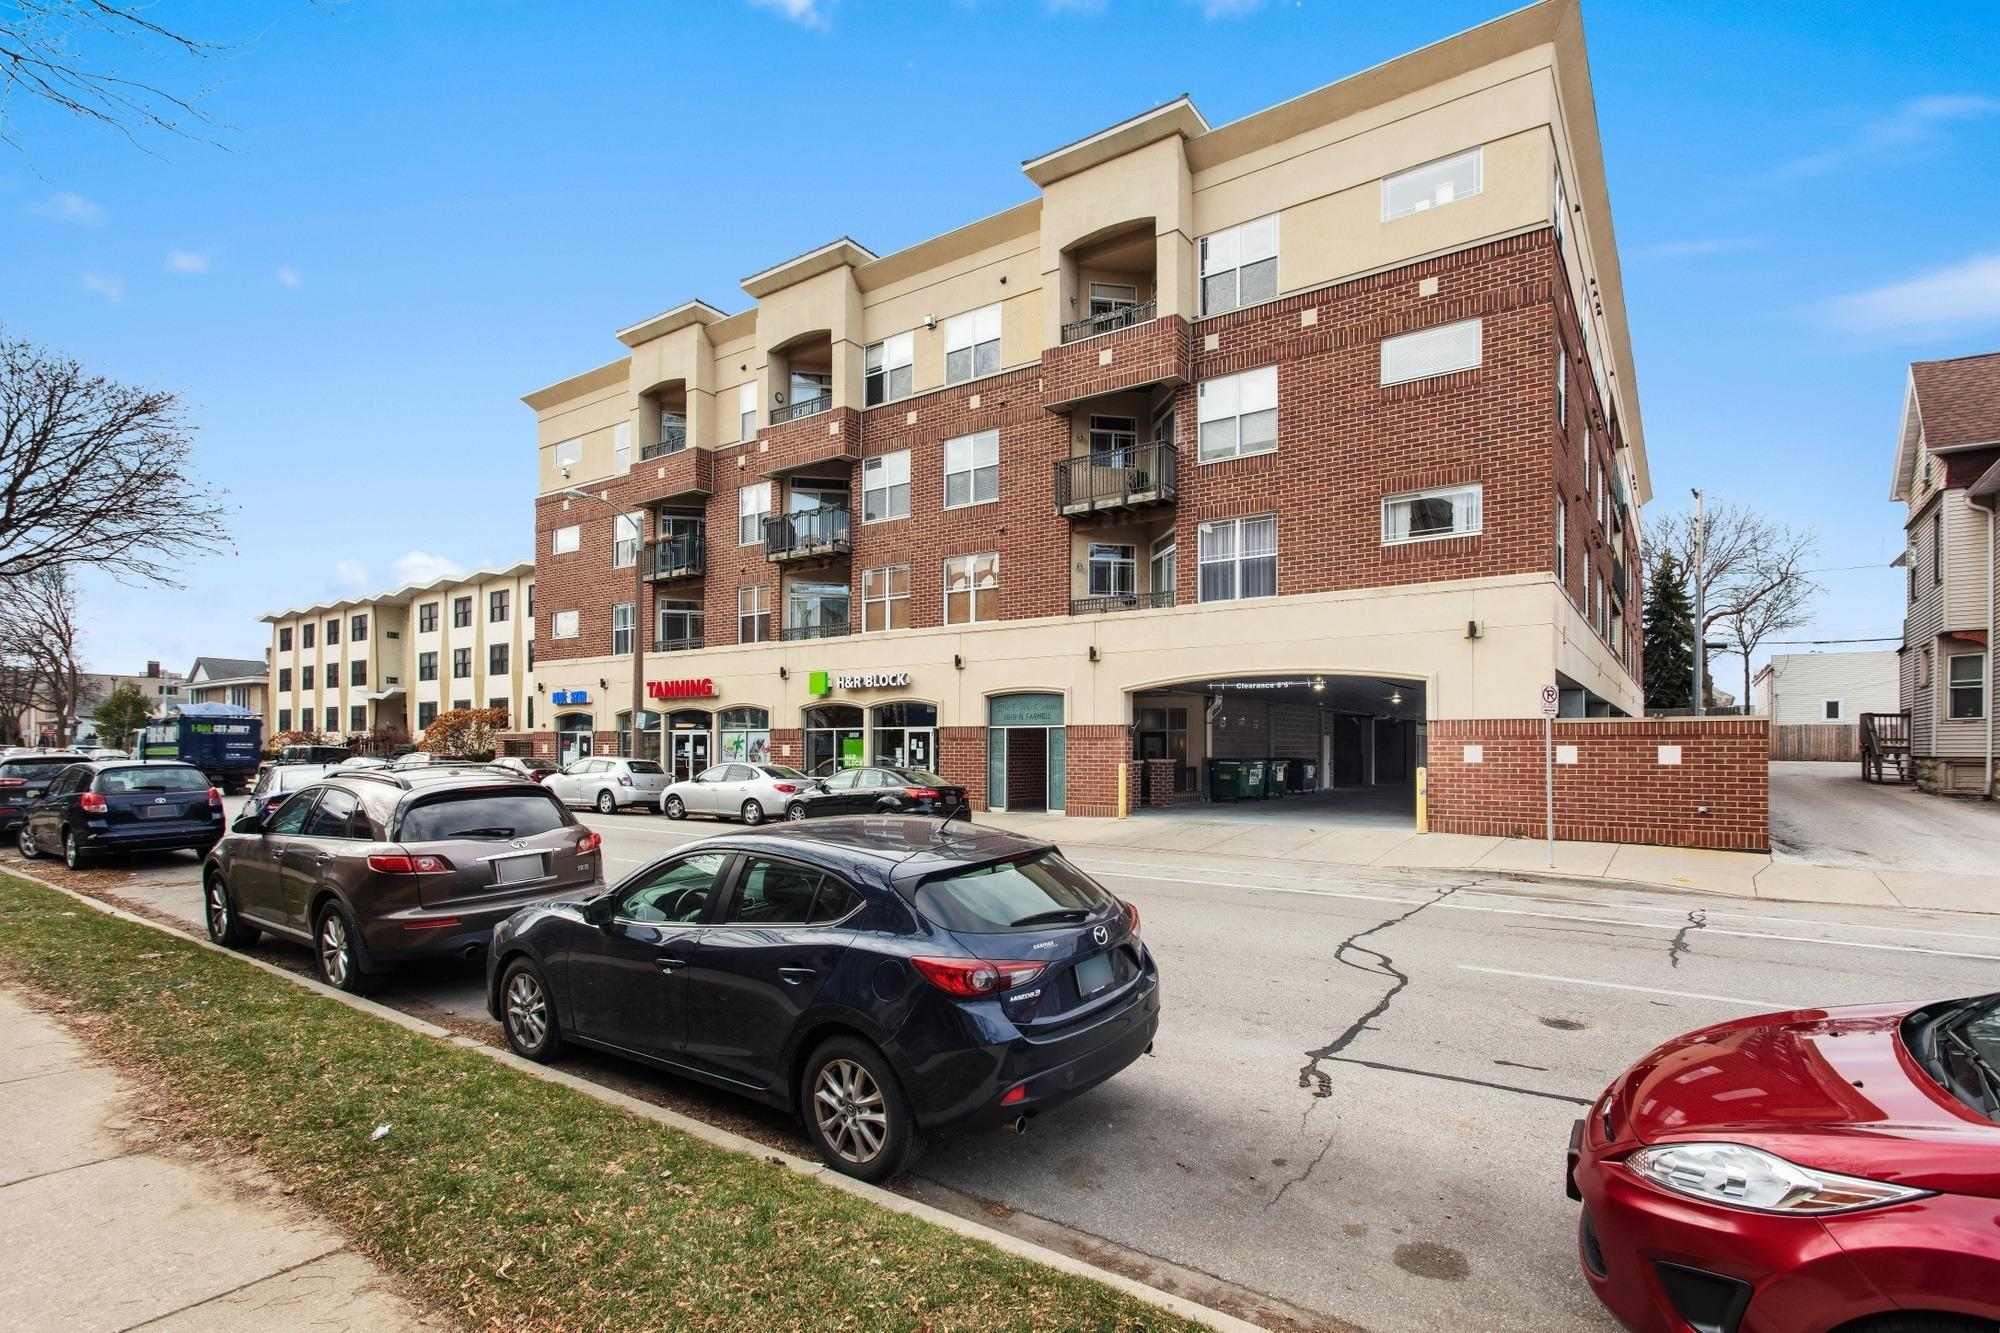 1619 Farwell Ave, Milwaukee, Wisconsin 53202, 2 Bedrooms Bedrooms, 5 Rooms Rooms,2 BathroomsBathrooms,Condominium,For Sale,Farwell Ave,1720861